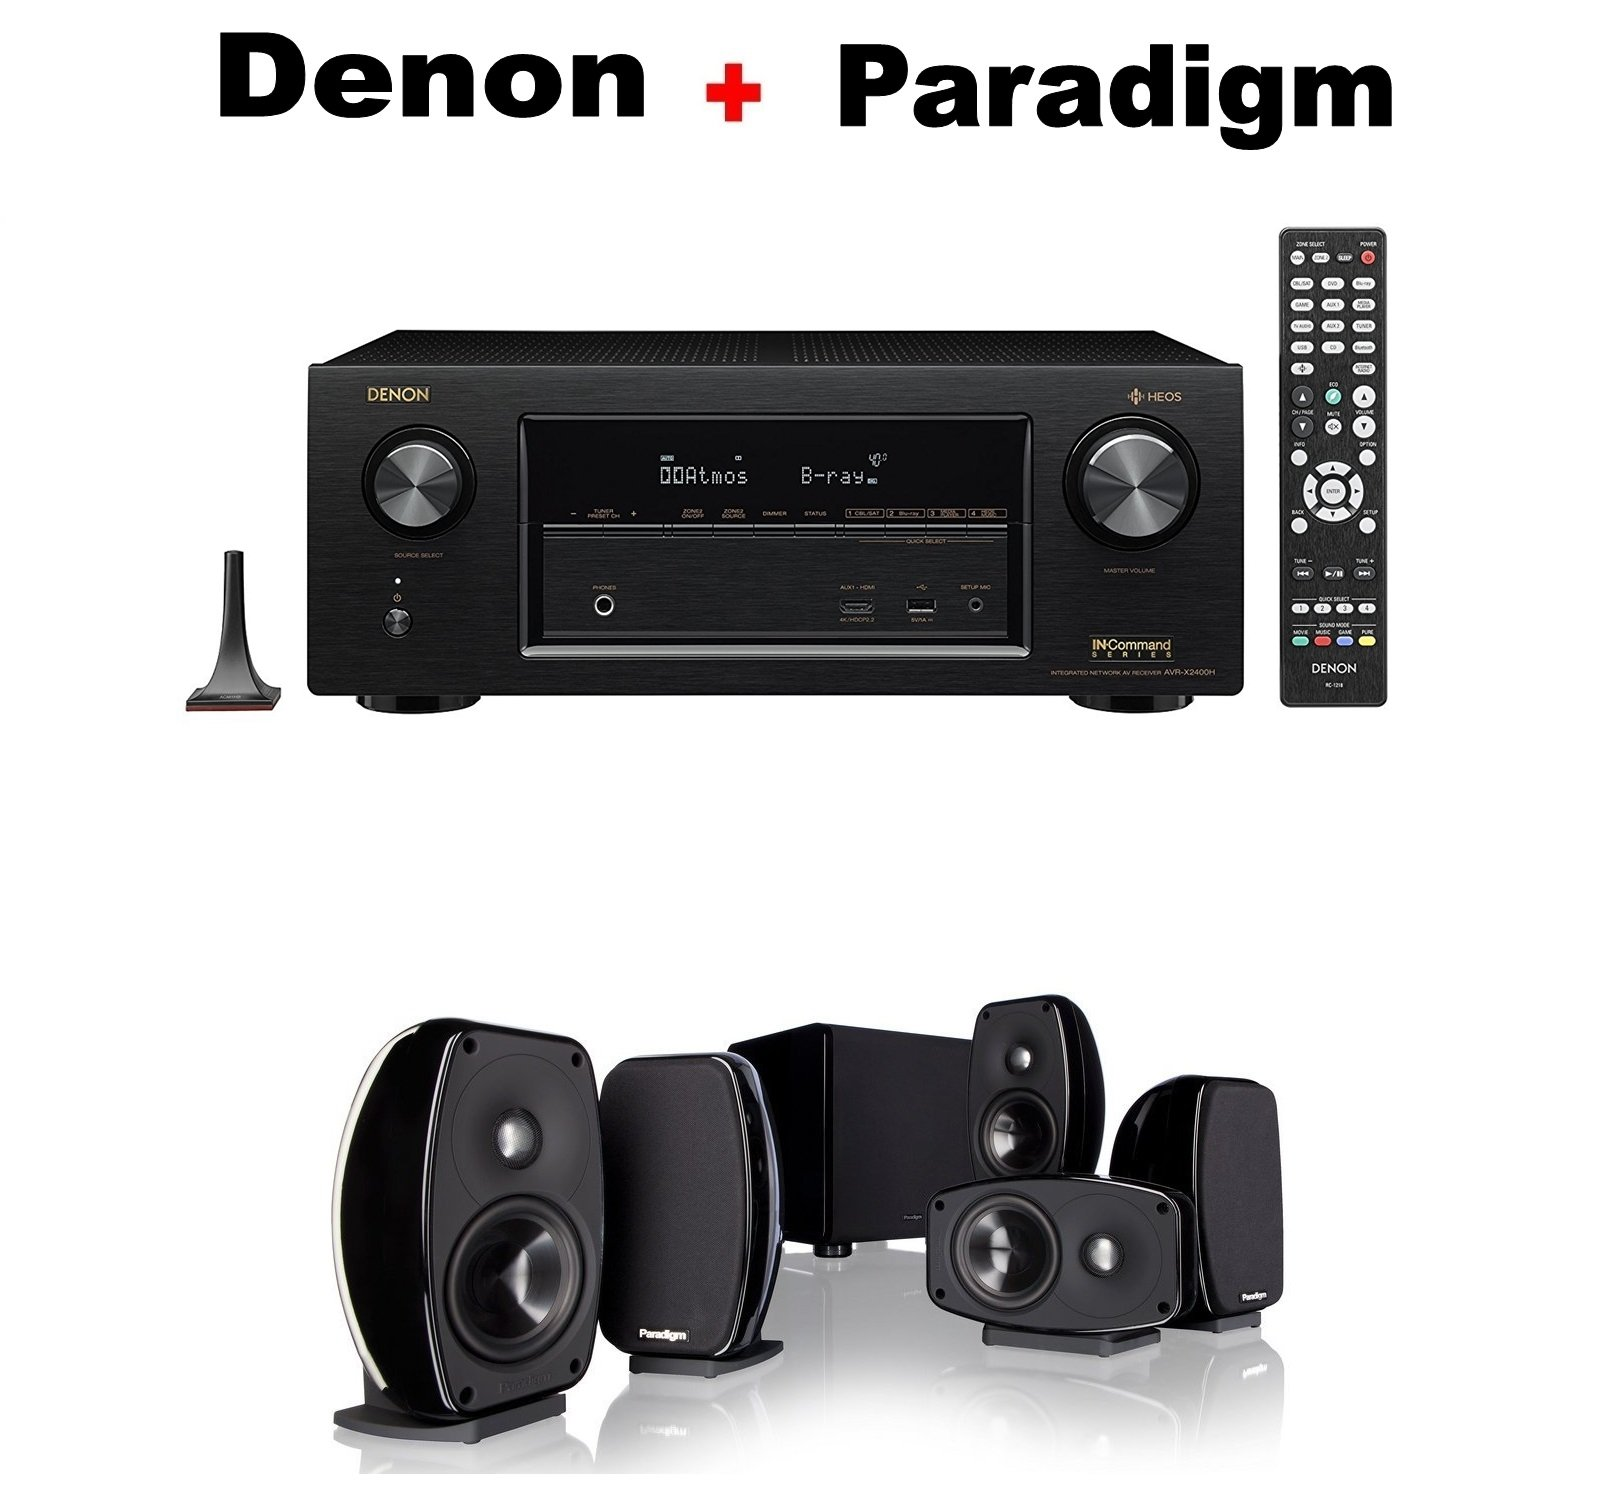 Denon AVR-X3400H 7.2 Channel Full 4K Ultra HD AV Receiver with Wi-Fi, Dolby Atmos, DTS:X, and HEOS + Paradigm Cinema 100 CT 5.1 Home Theater System Bundle